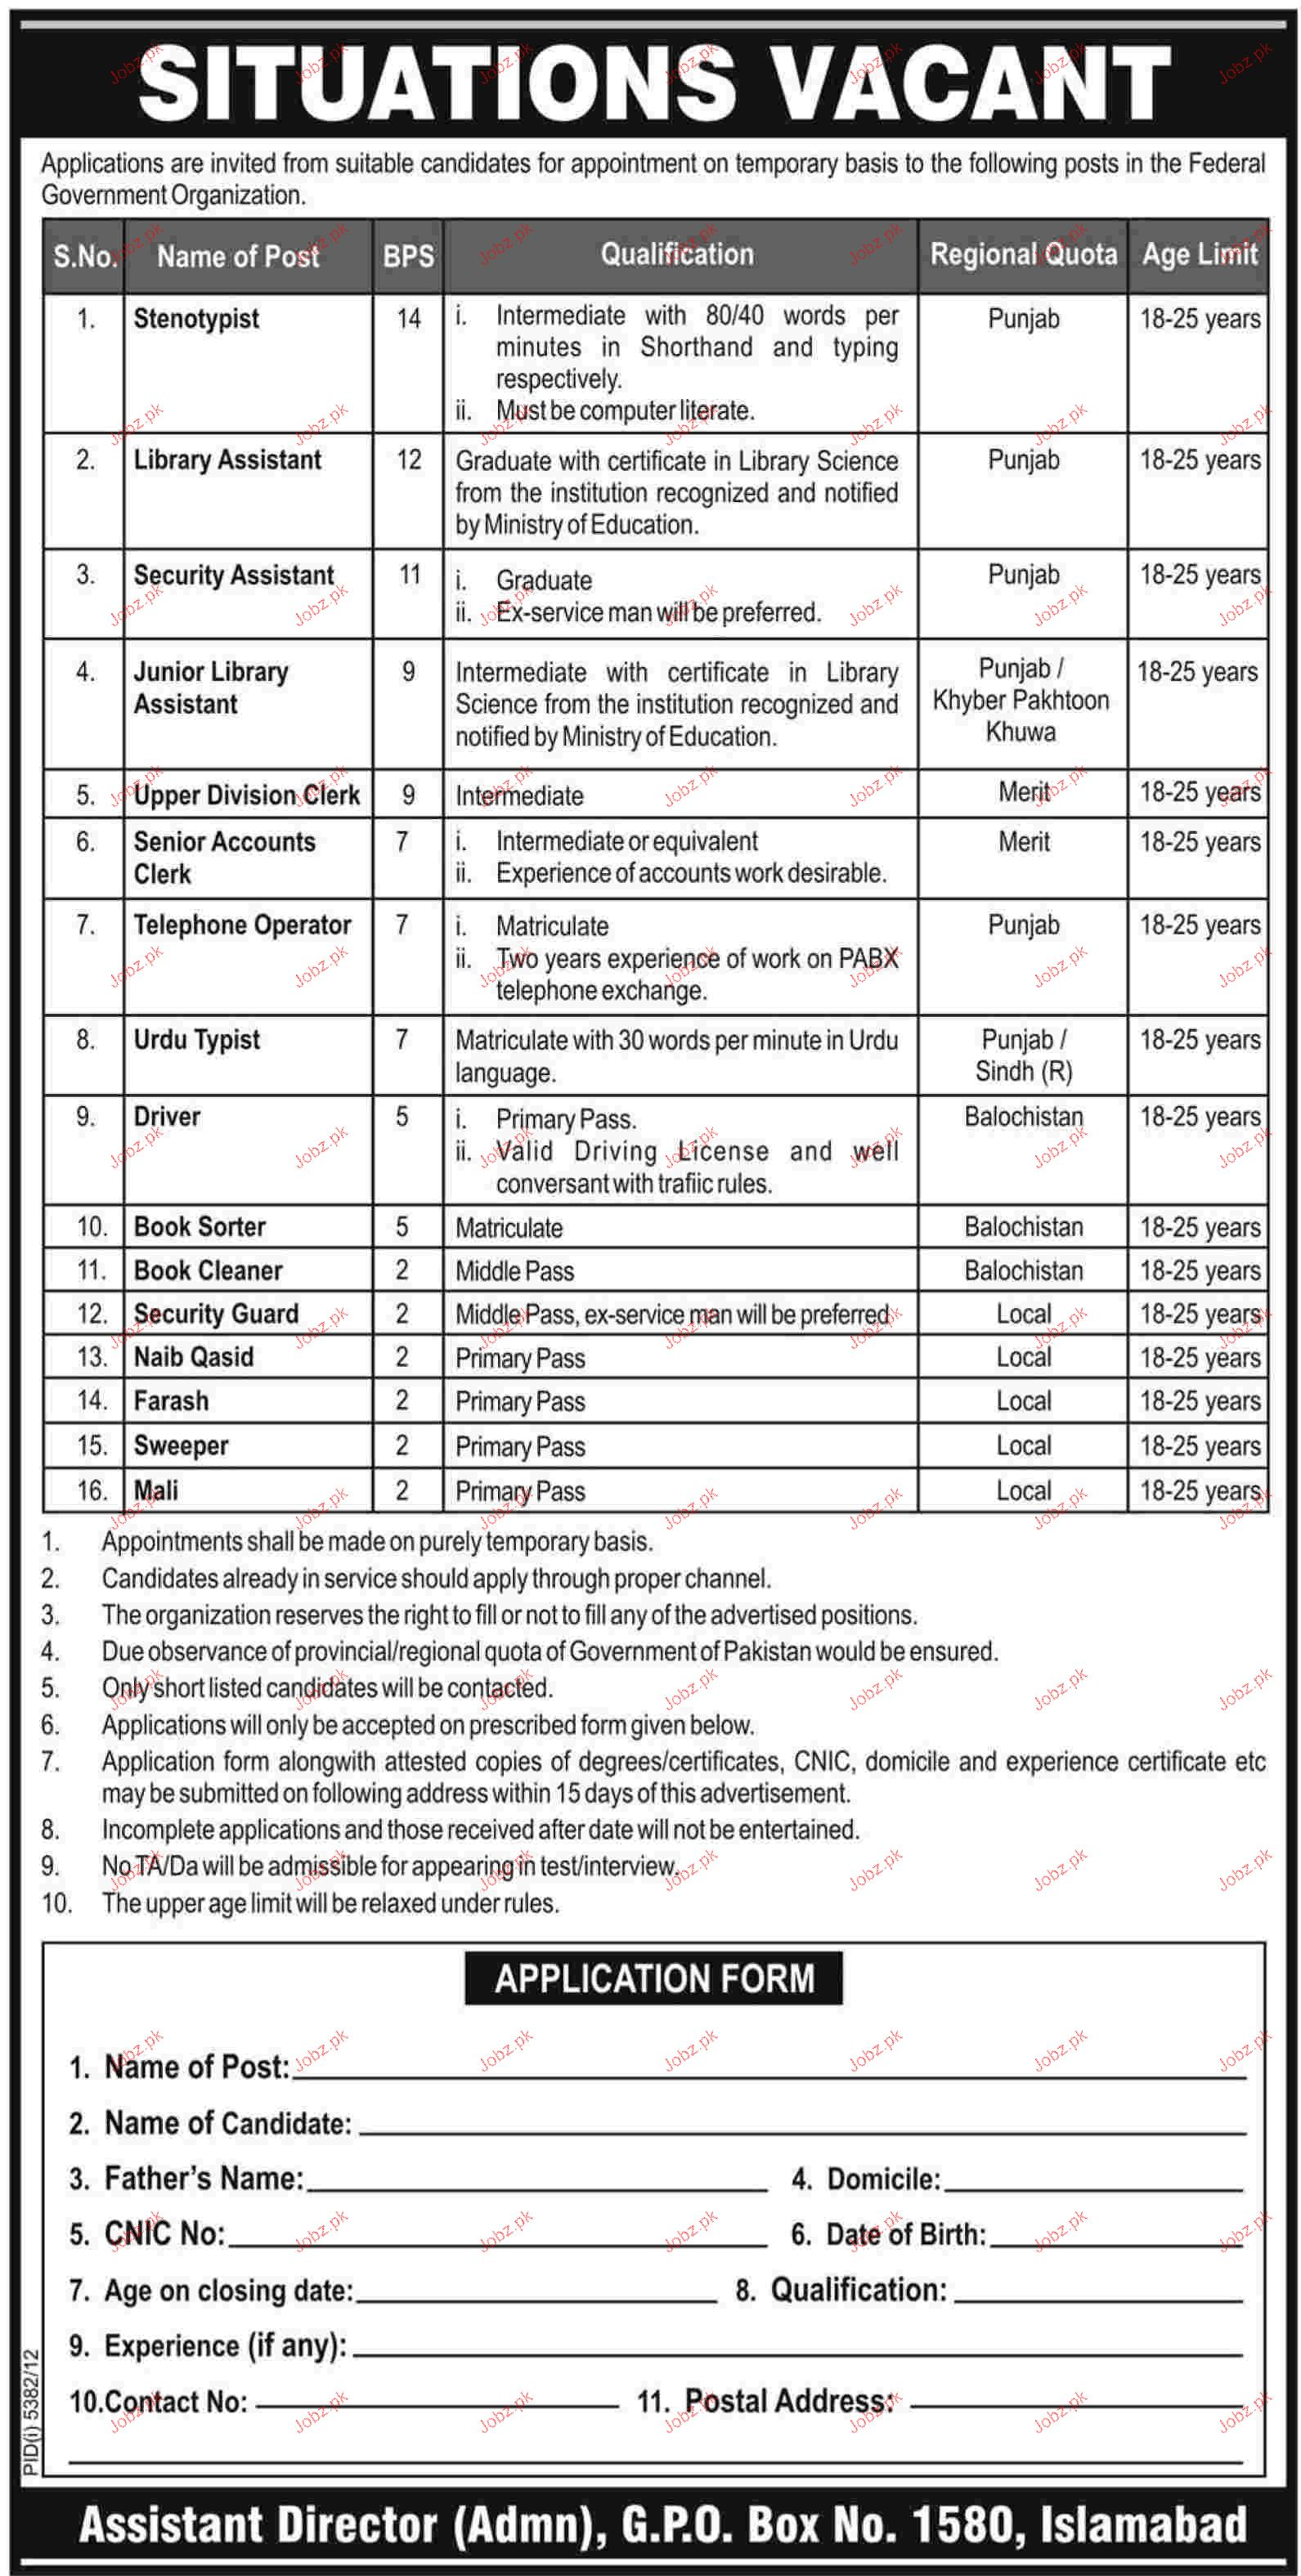 Stenotypist, Library Assistant, Security Assistant Wanted